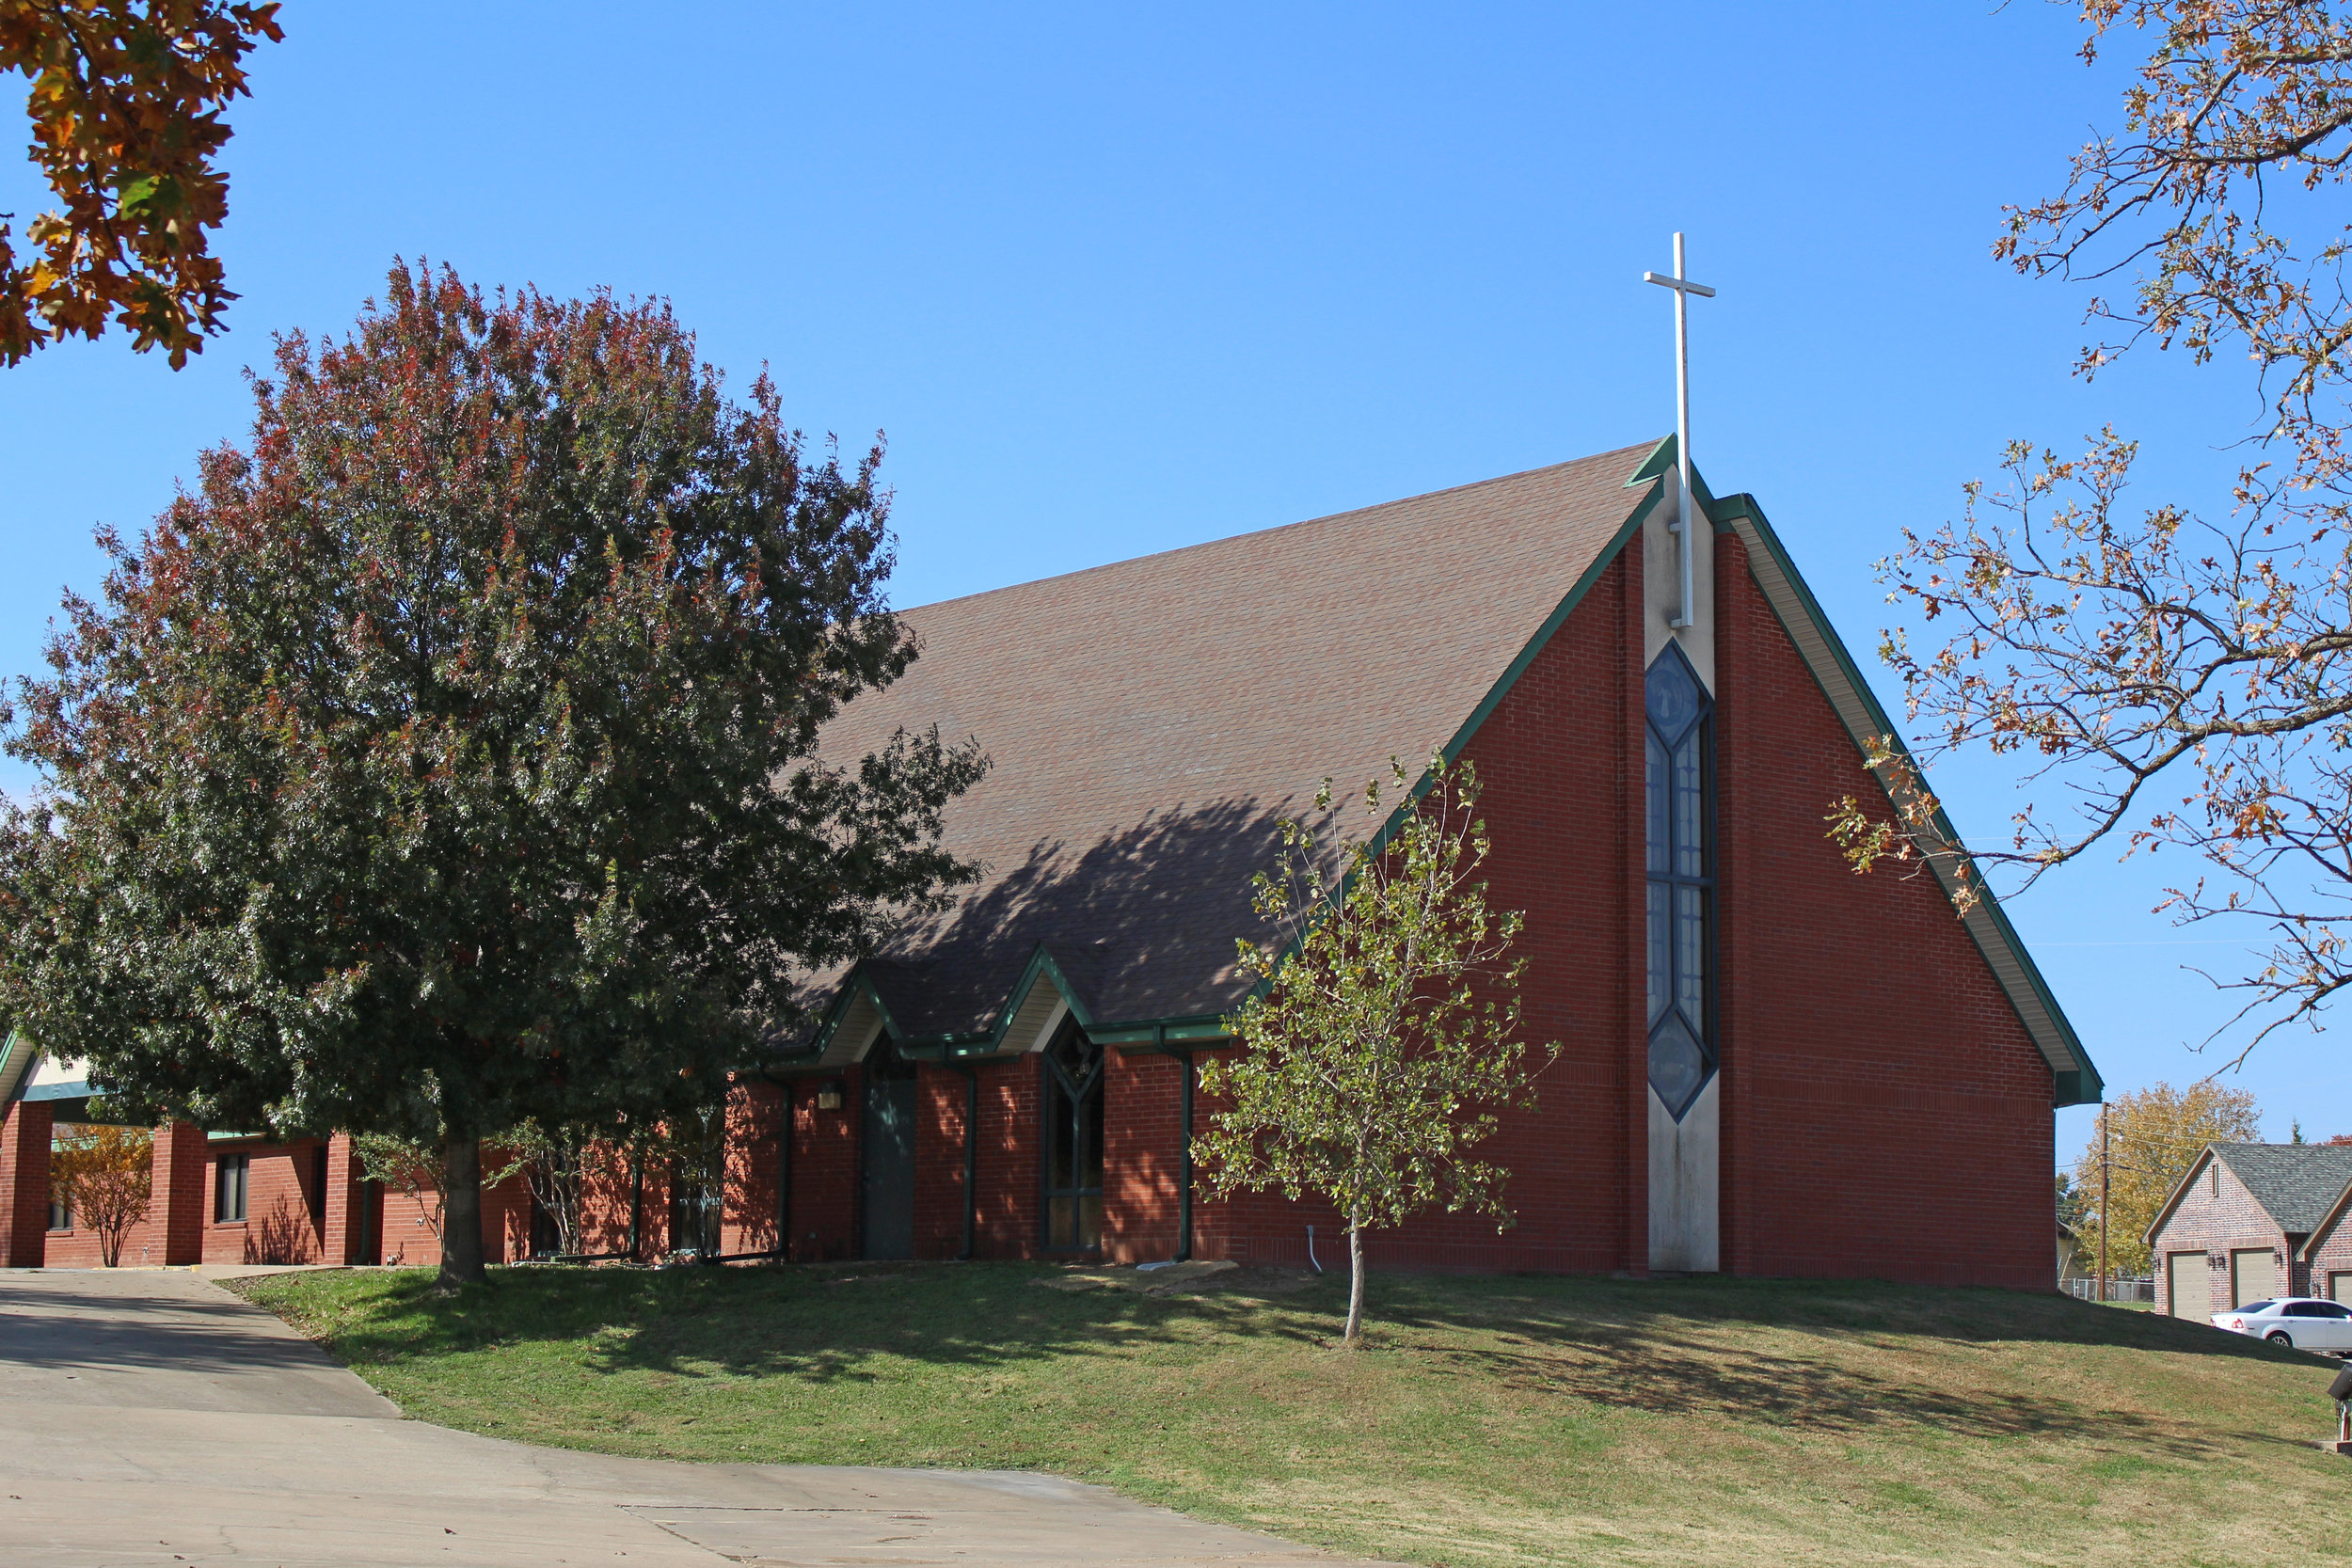 st. andrew's lutheran church - prattville 3210 south 113th avenue west